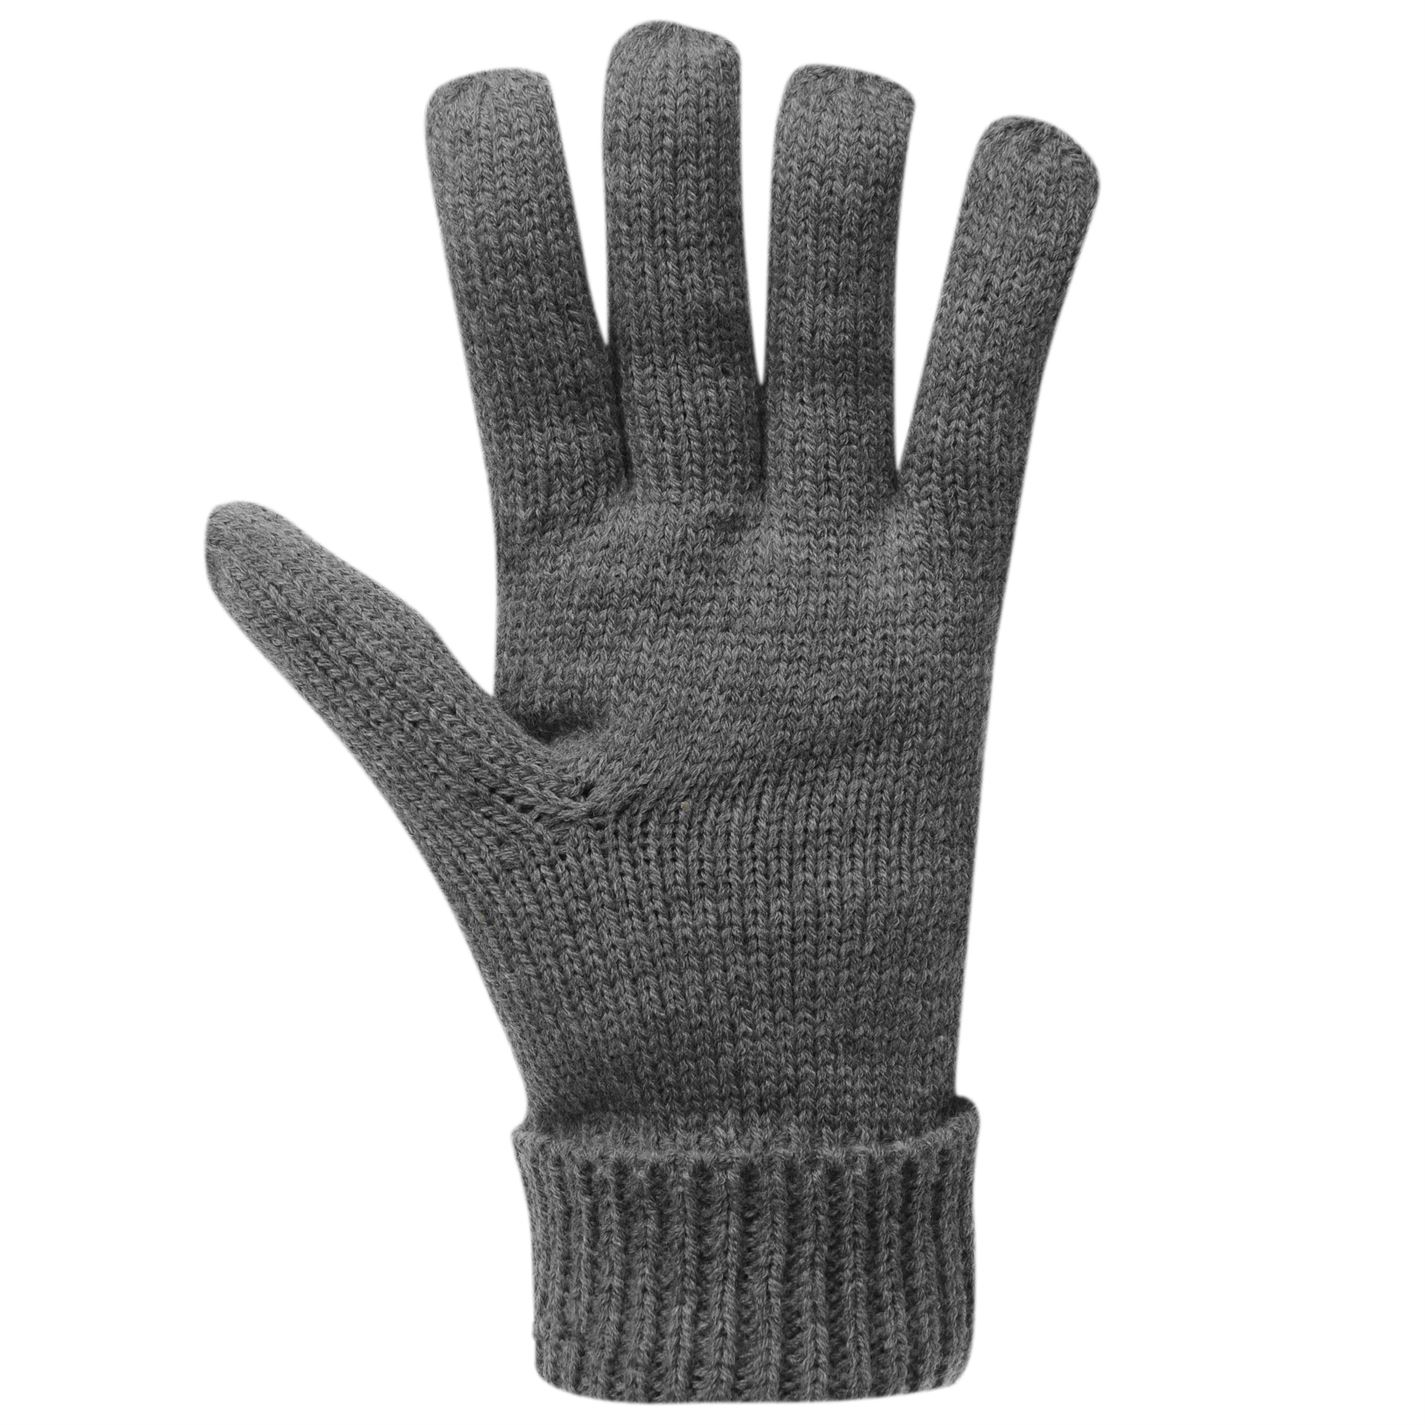 Mens-Firetrap-Cable-Knit-Gloves-Knitted-Winter-New thumbnail 5